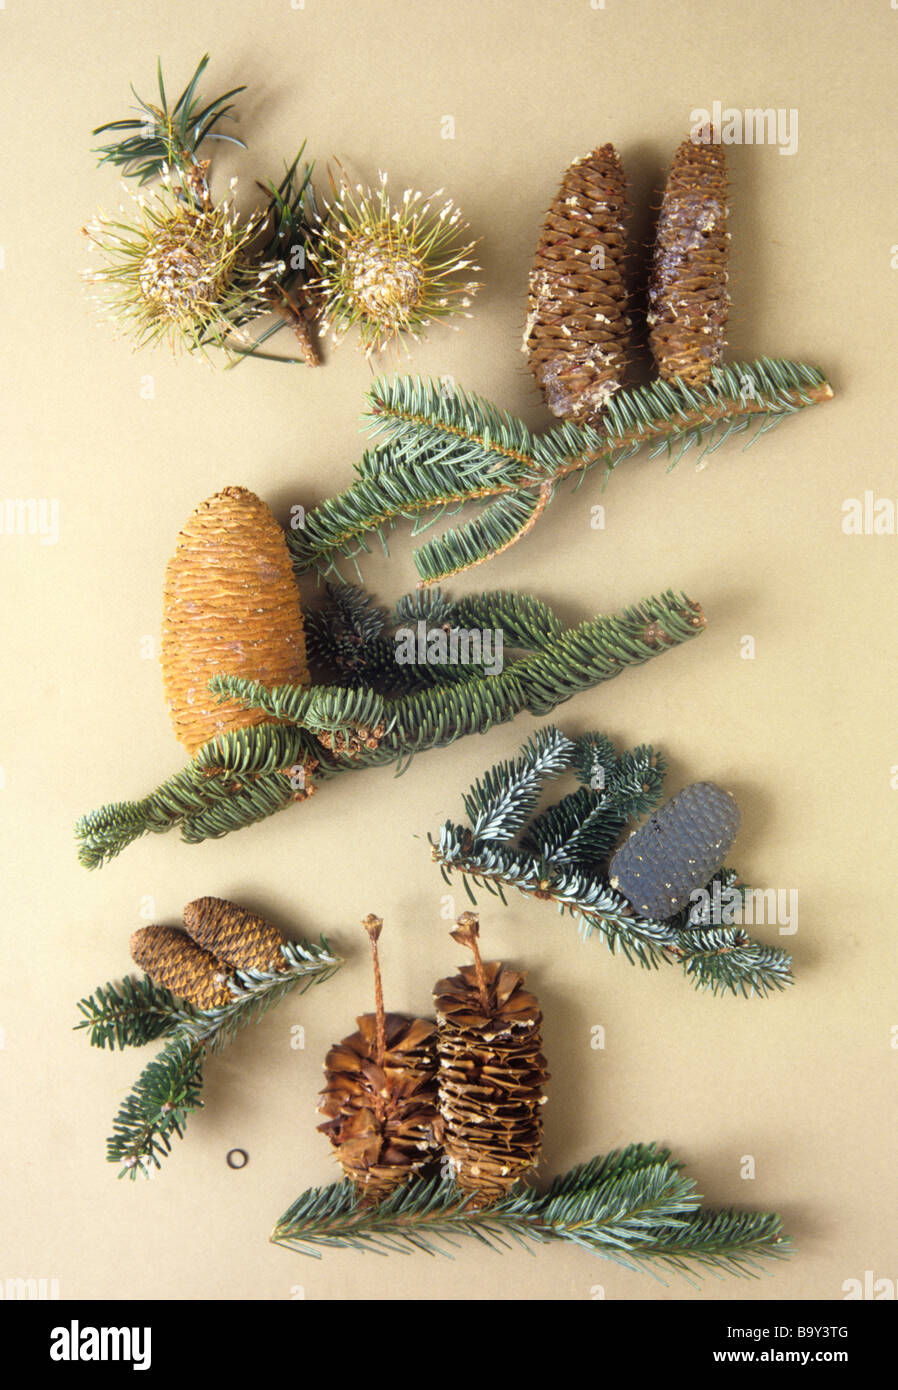 Abies specimens with 1 centimetre scale ring - Stock Image